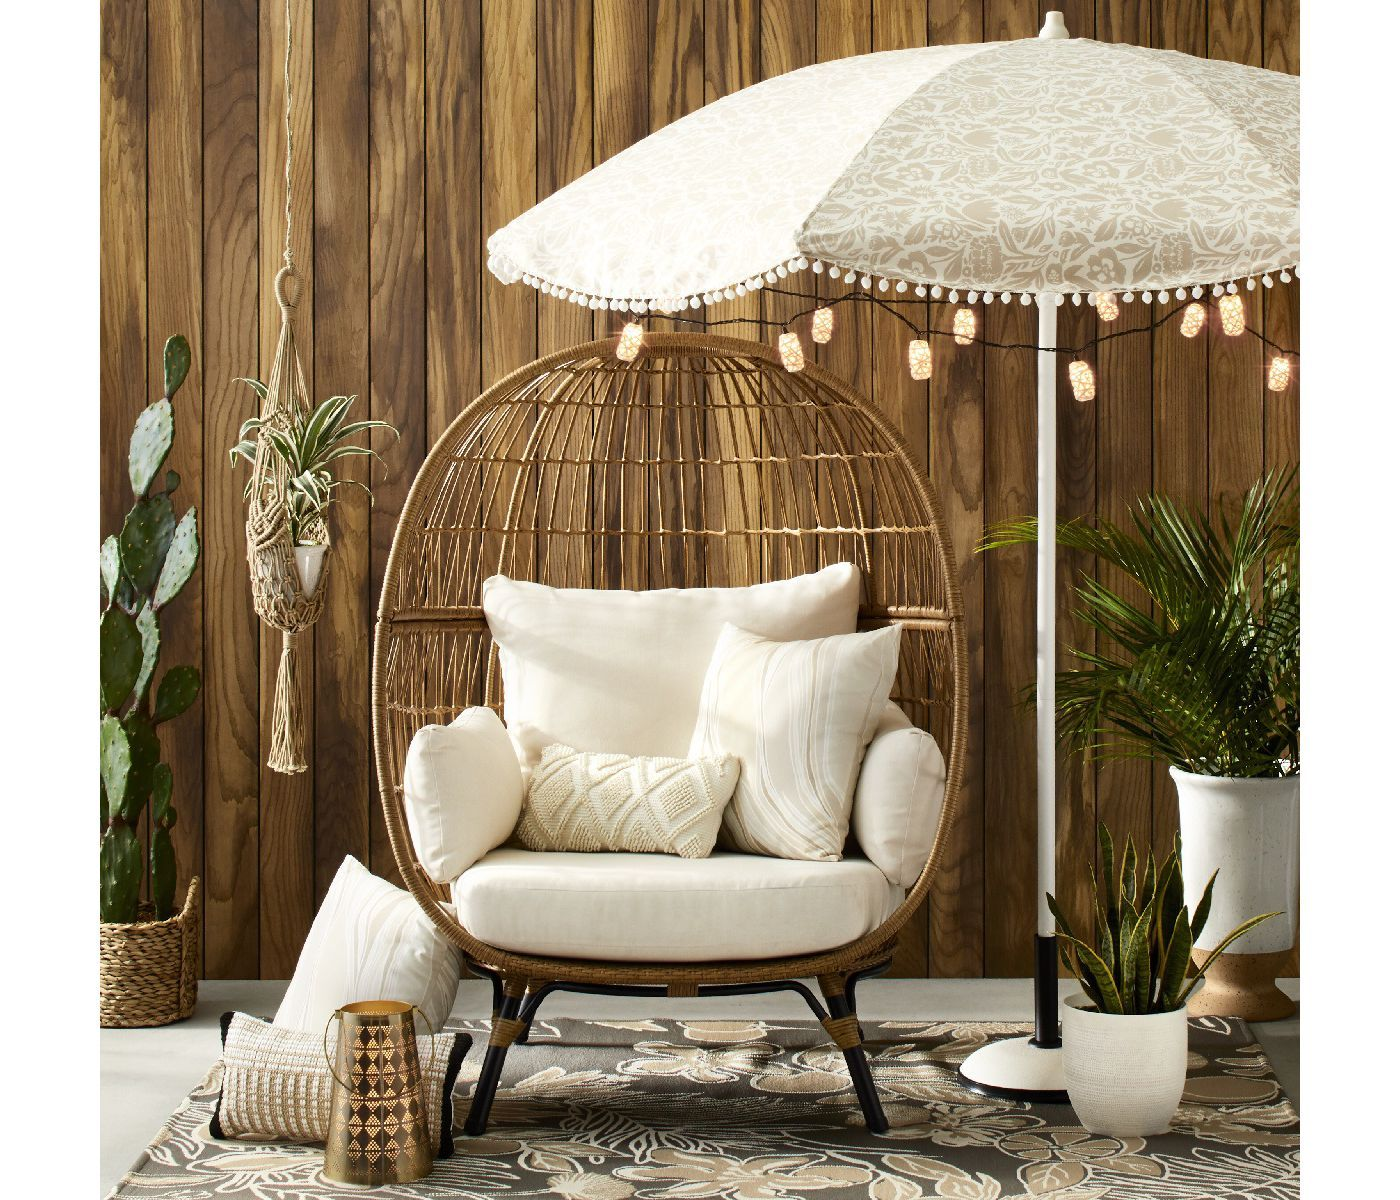 Pin On Outdoor Home Inspo